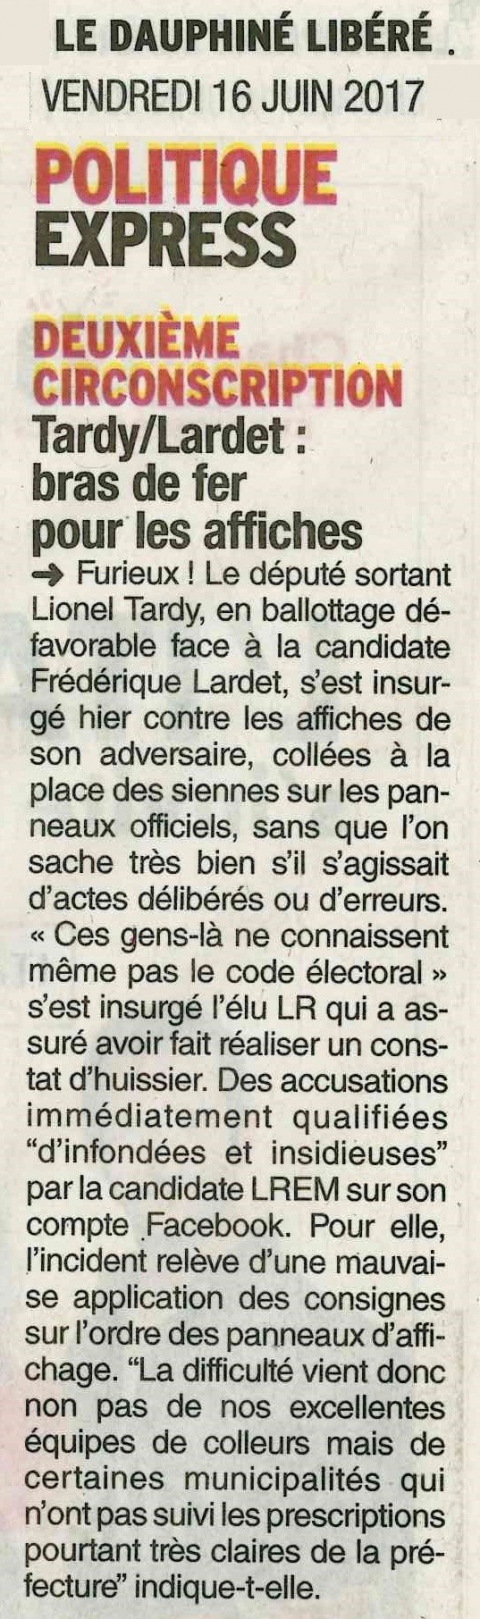 dauphine,tardy,lardet,presse,election,legislatives 2017